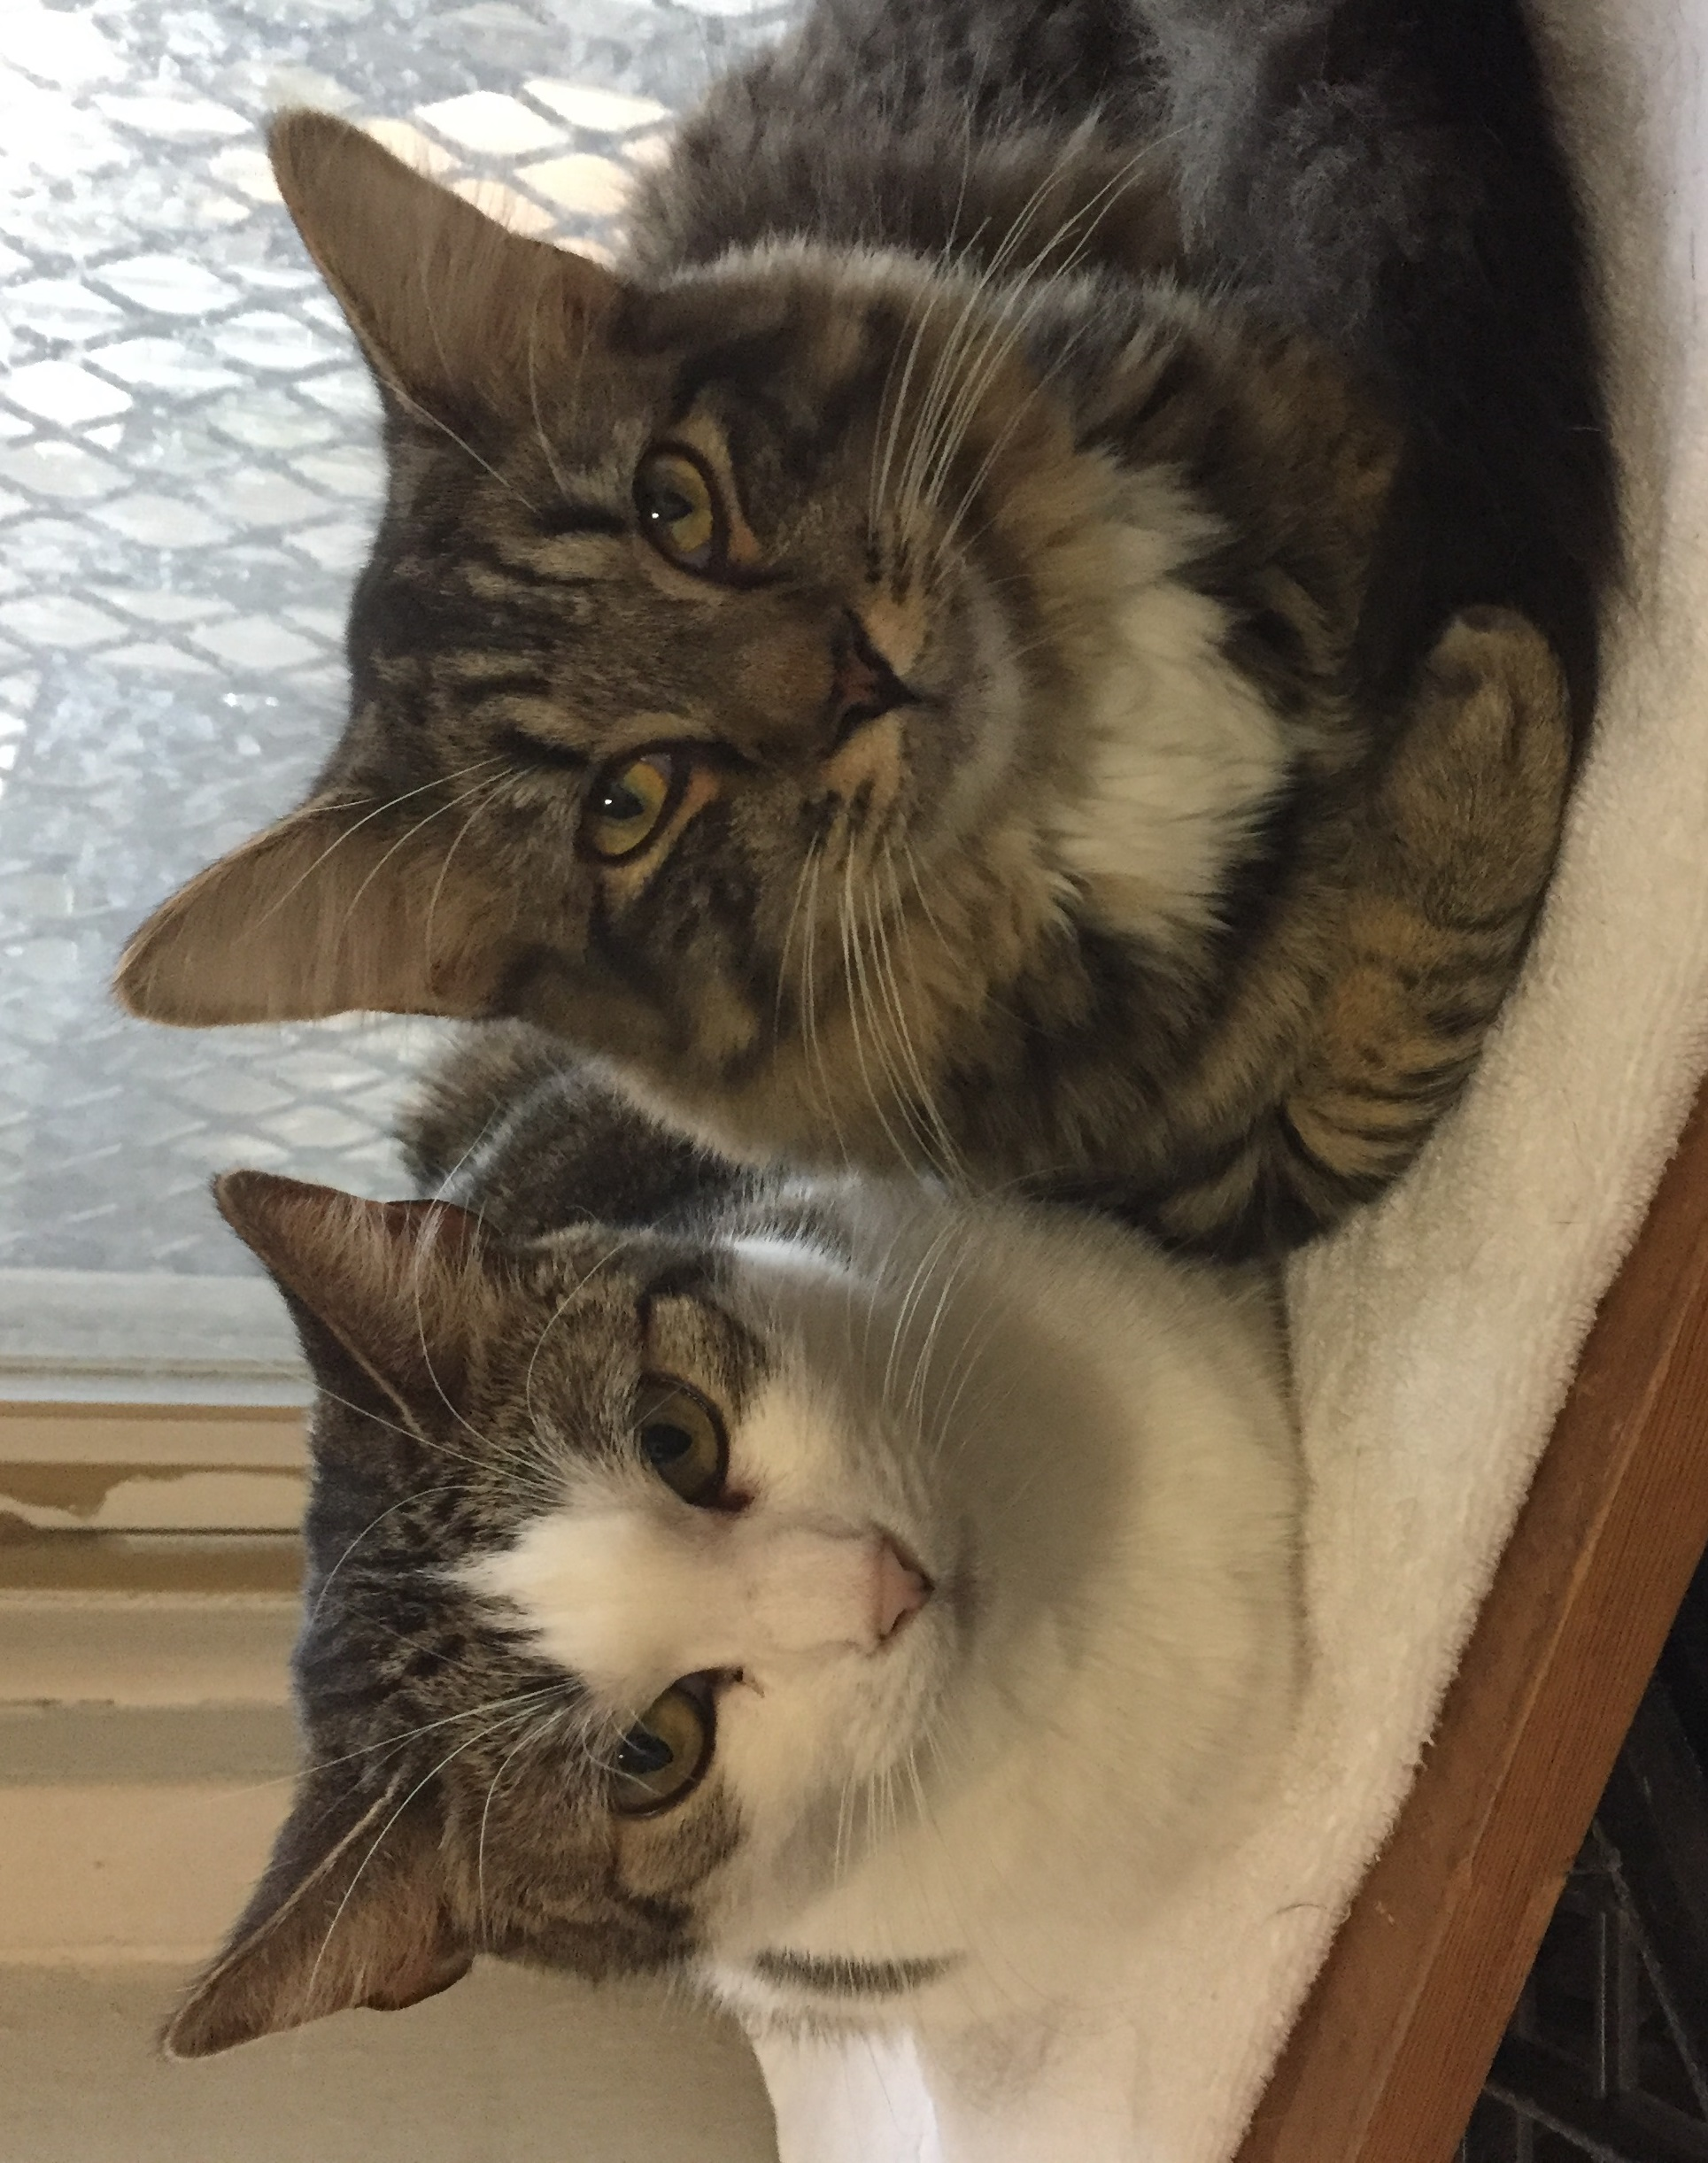 Jemma and Olaf relax together. Jemma and her six kittens were rescued two years ago from an old car about to be towed to the junkyard. A Metro Cat Rescue volunteer saved Olaf's mom from the streets so her babies would be born in a home.